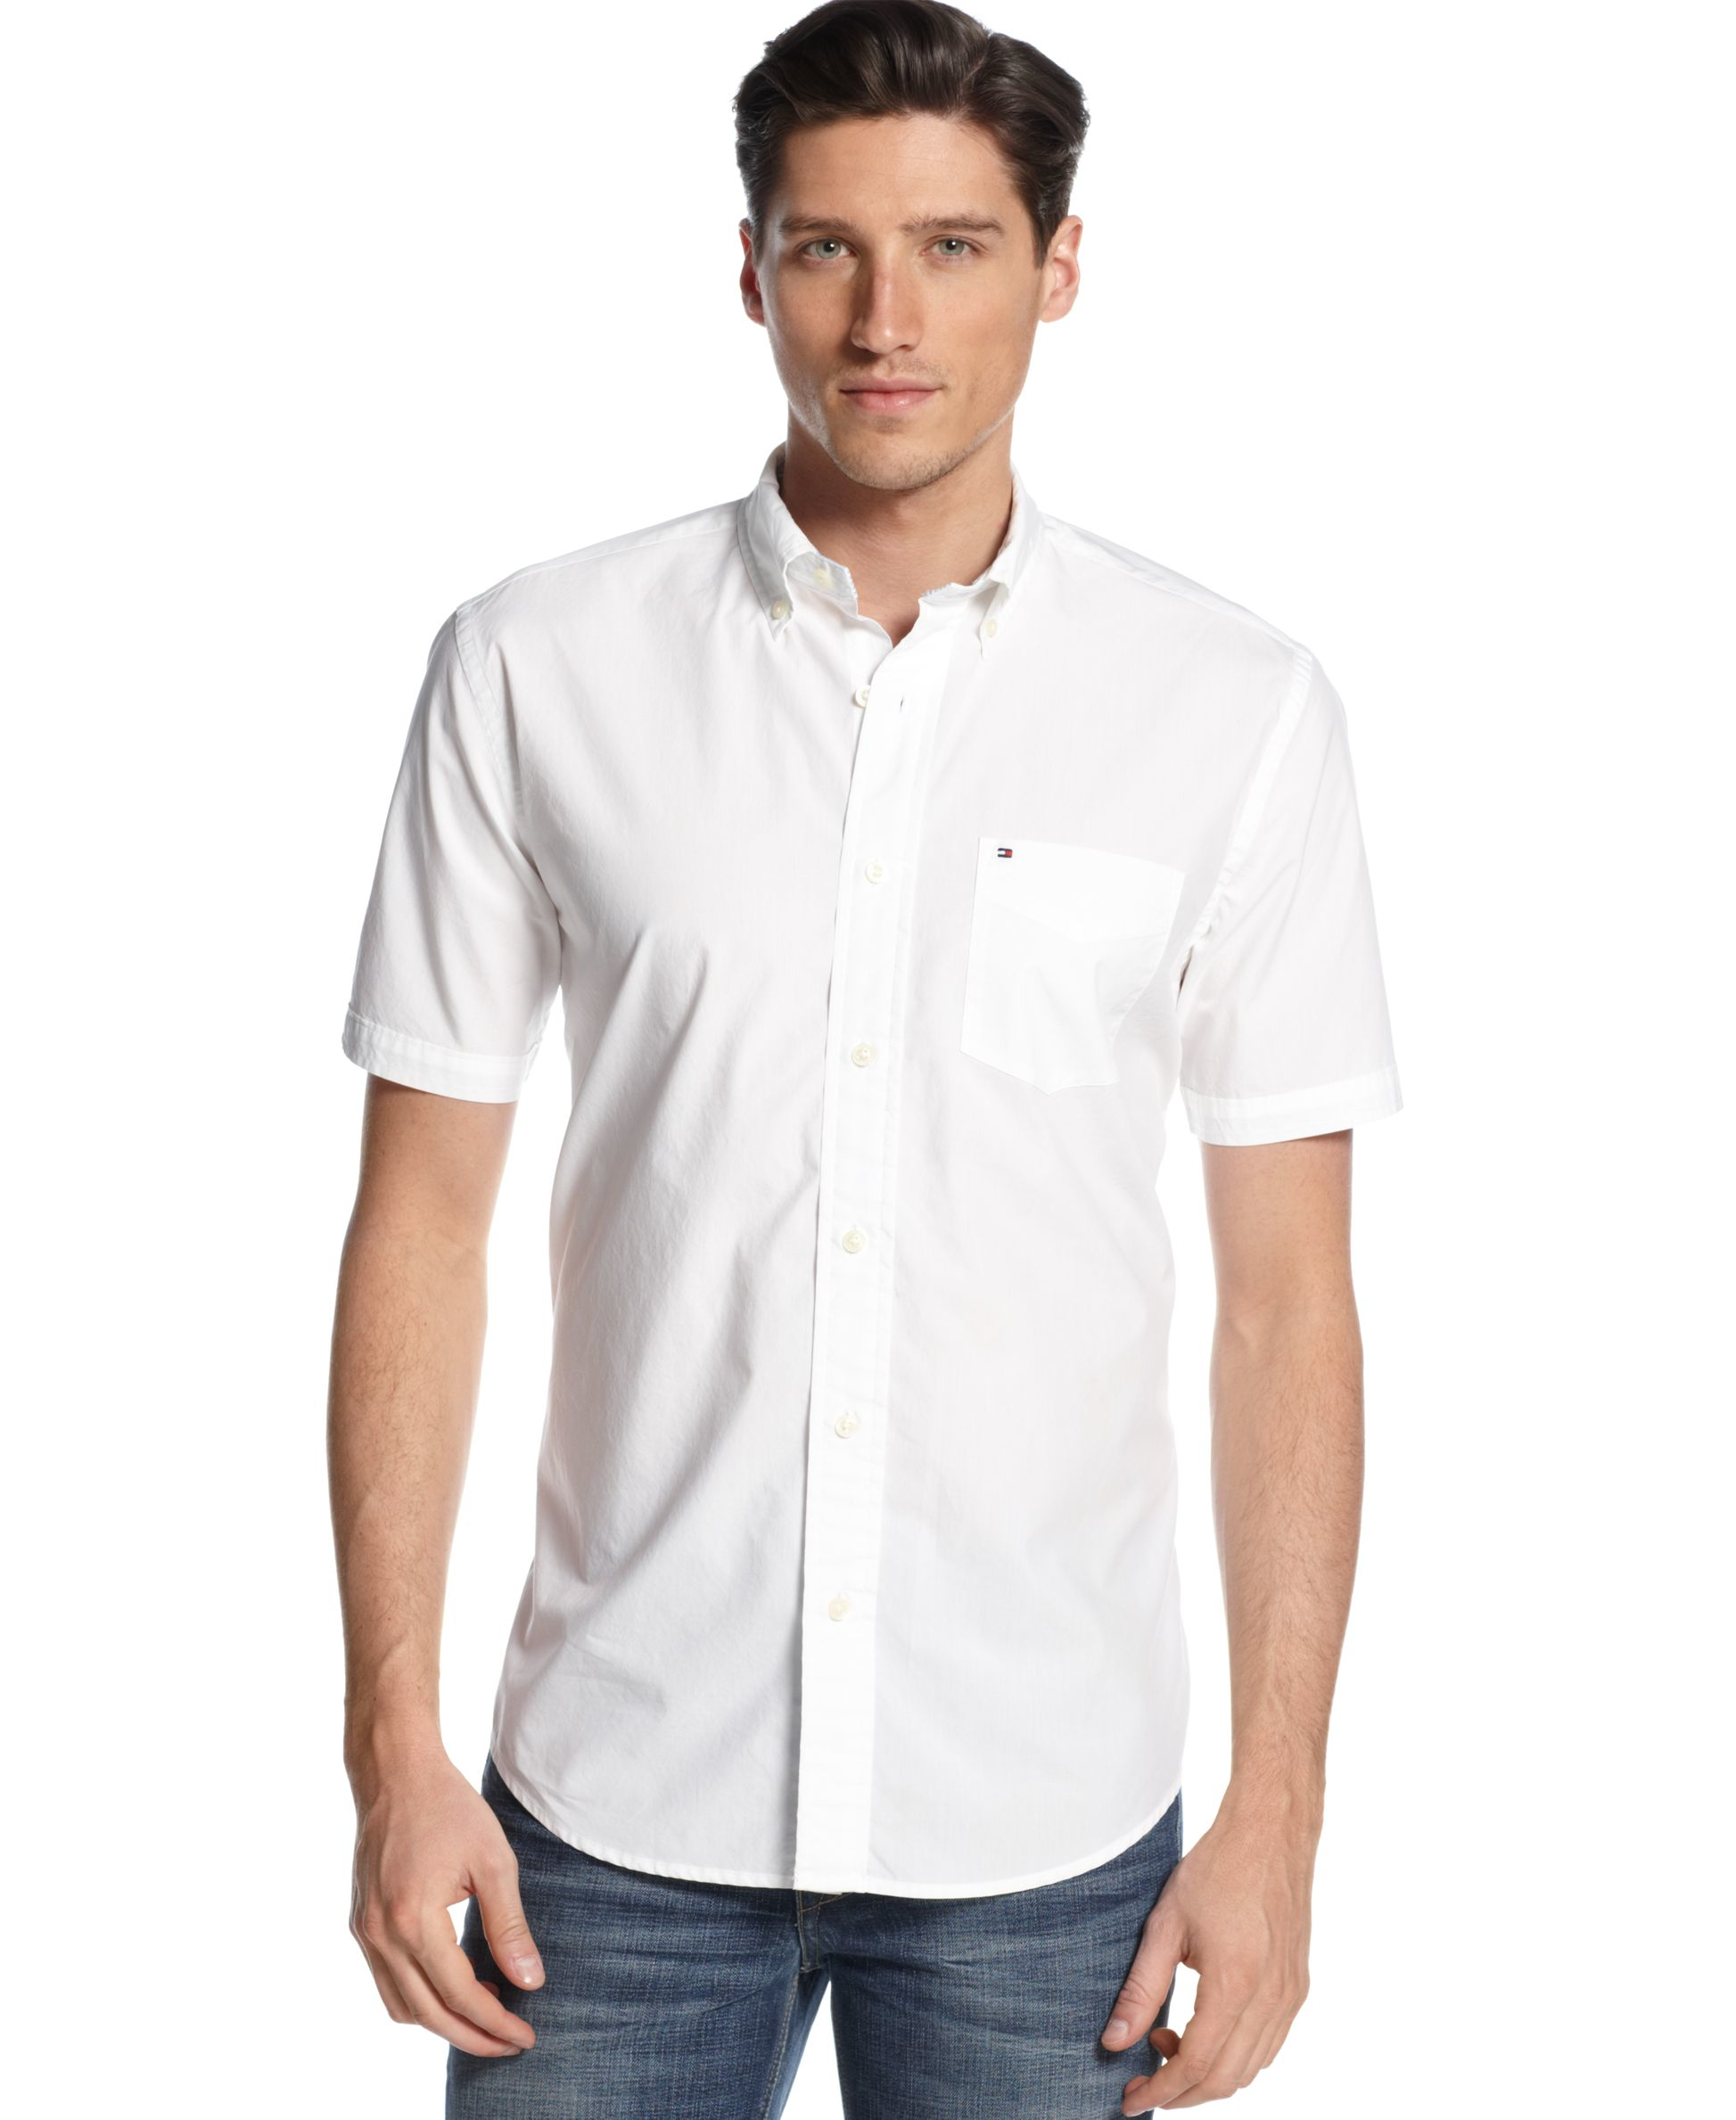 White Short Sleeve Button Down Collar Shirt Custom Shirt